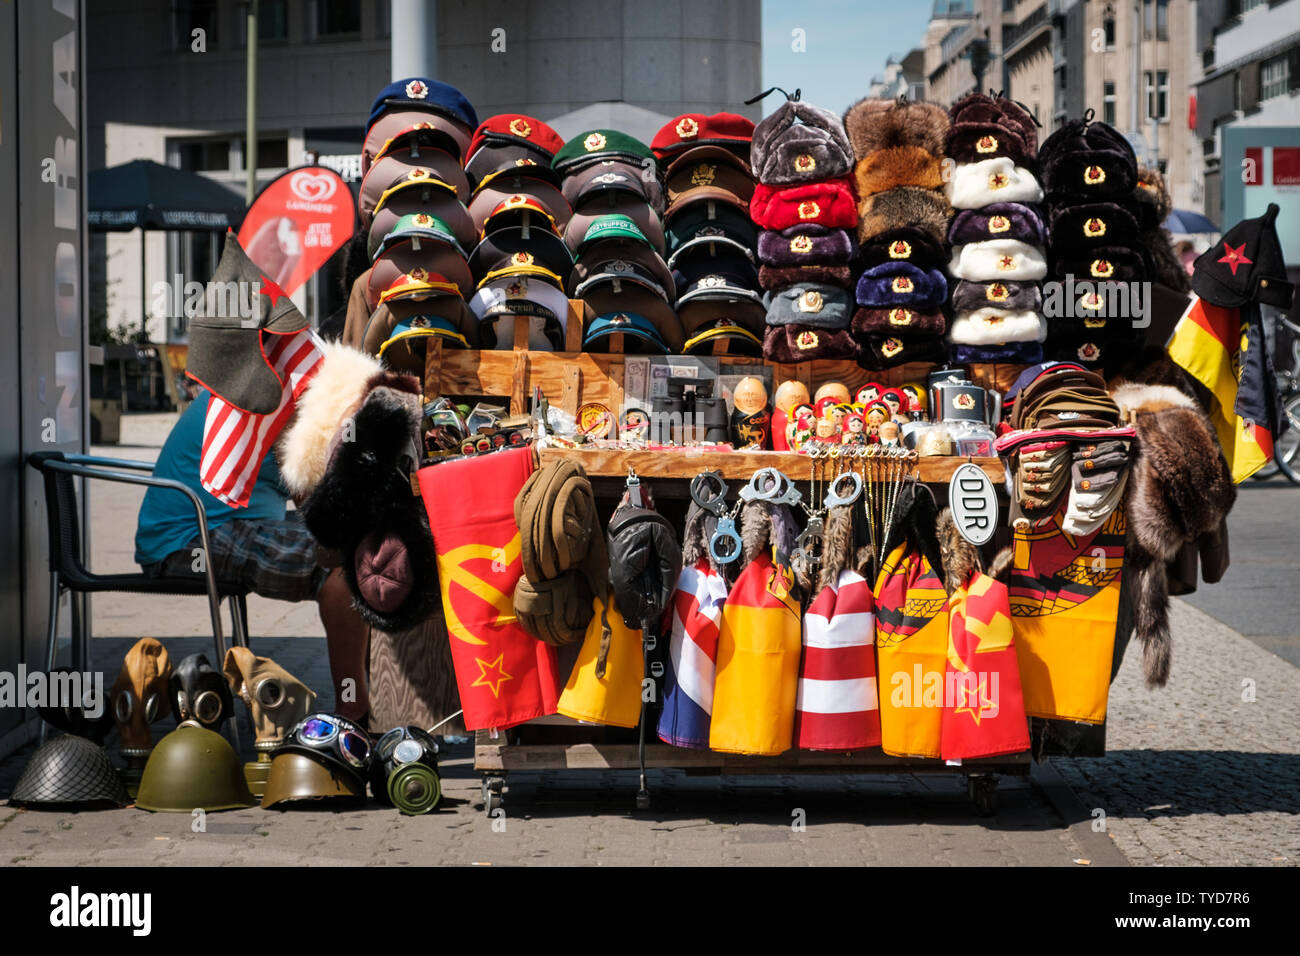 Berlin, Germany - June, 2019:  Souvenir vendor selling Cold War objects from East Germany (DDR) on street  in Berlin - Stock Image